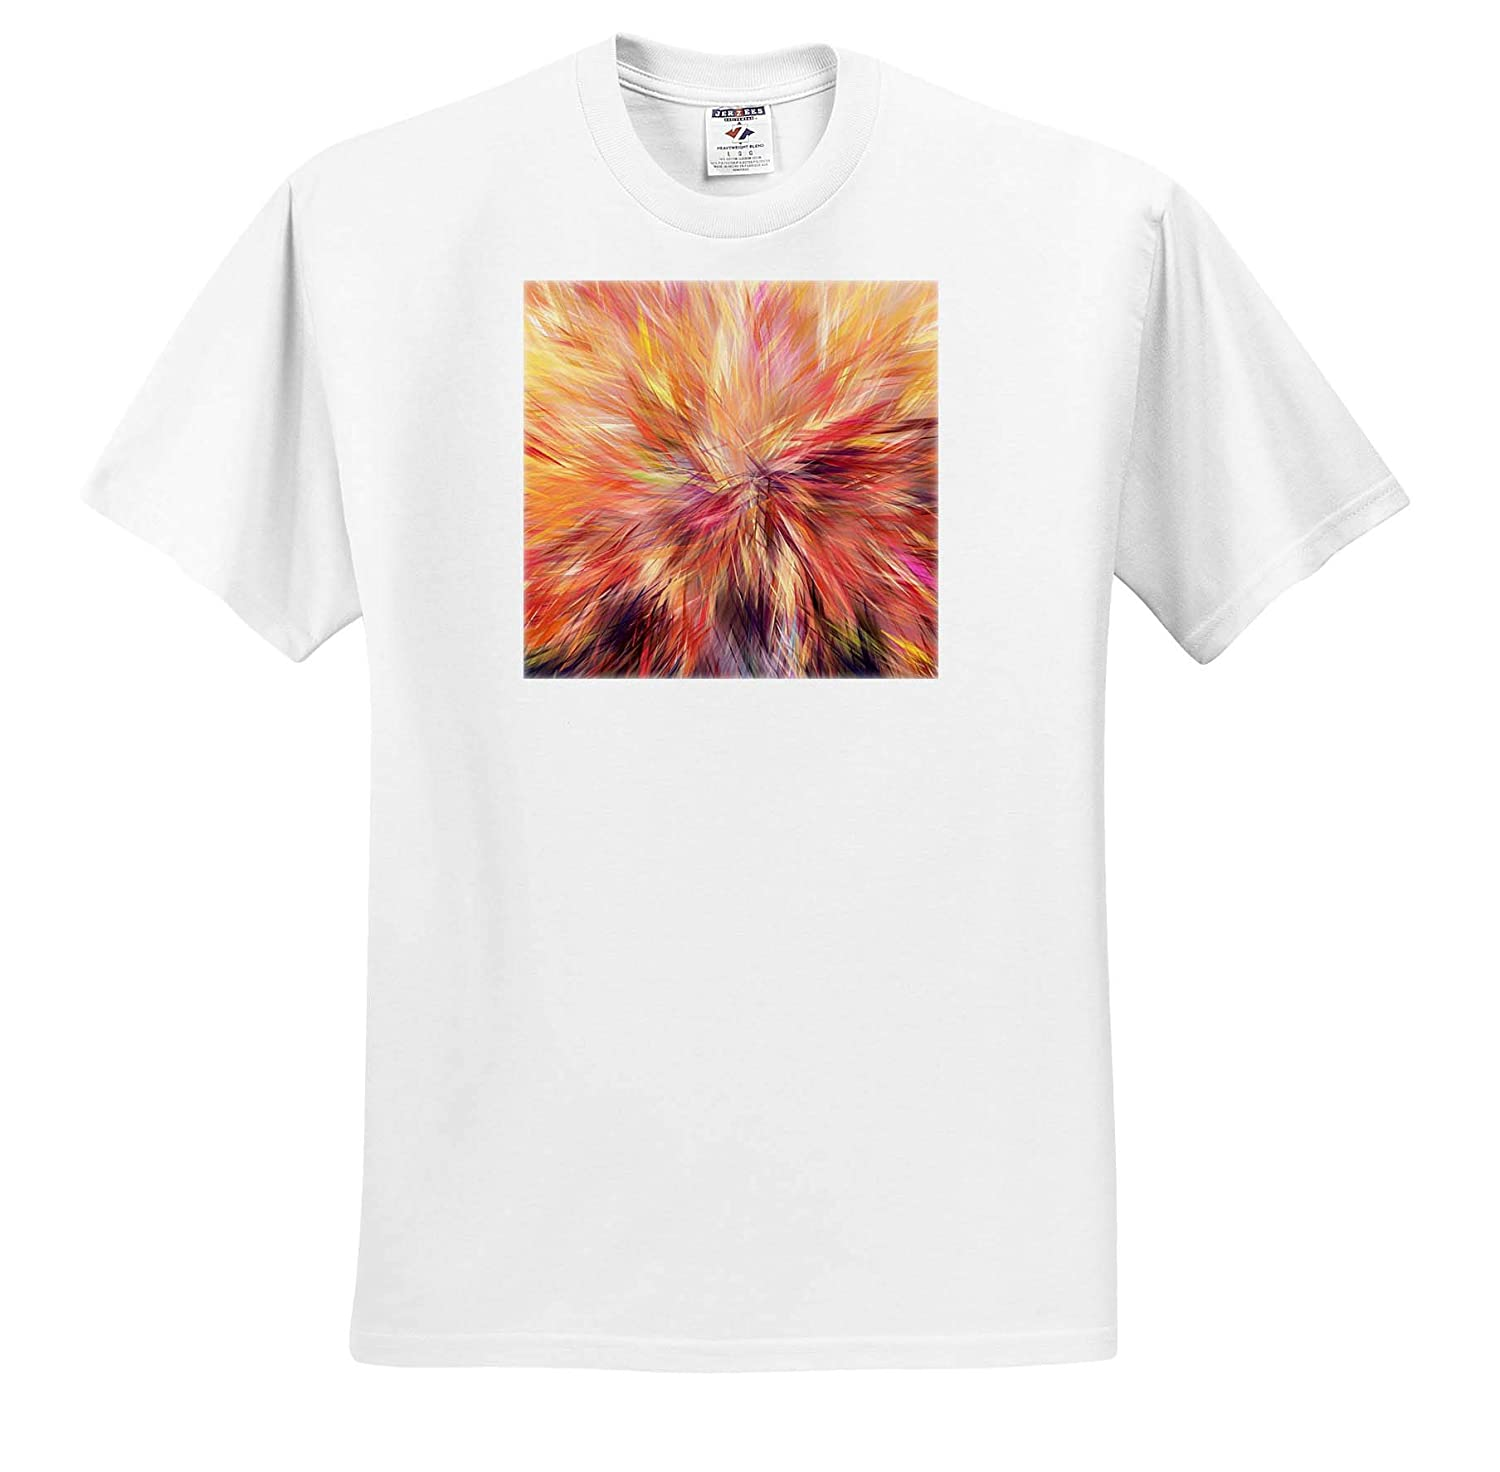 3dRose Lens Art by Florene T-Shirts Geometric Abstract Image of Yellow Fuchsia and Purple Feather Painting